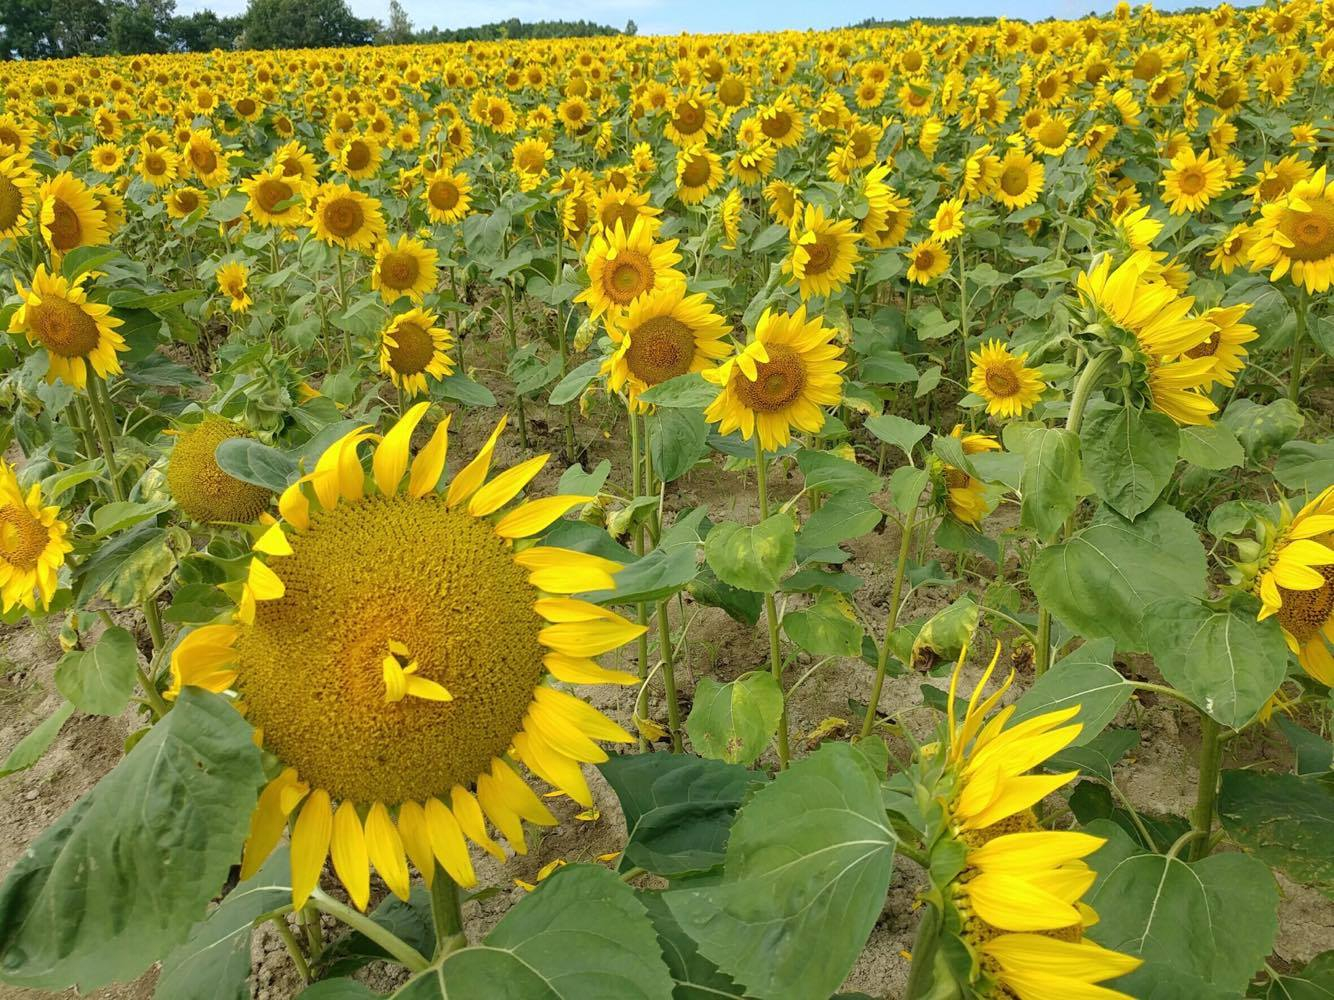 Sunflowers as far as you can see in Hokkaido!